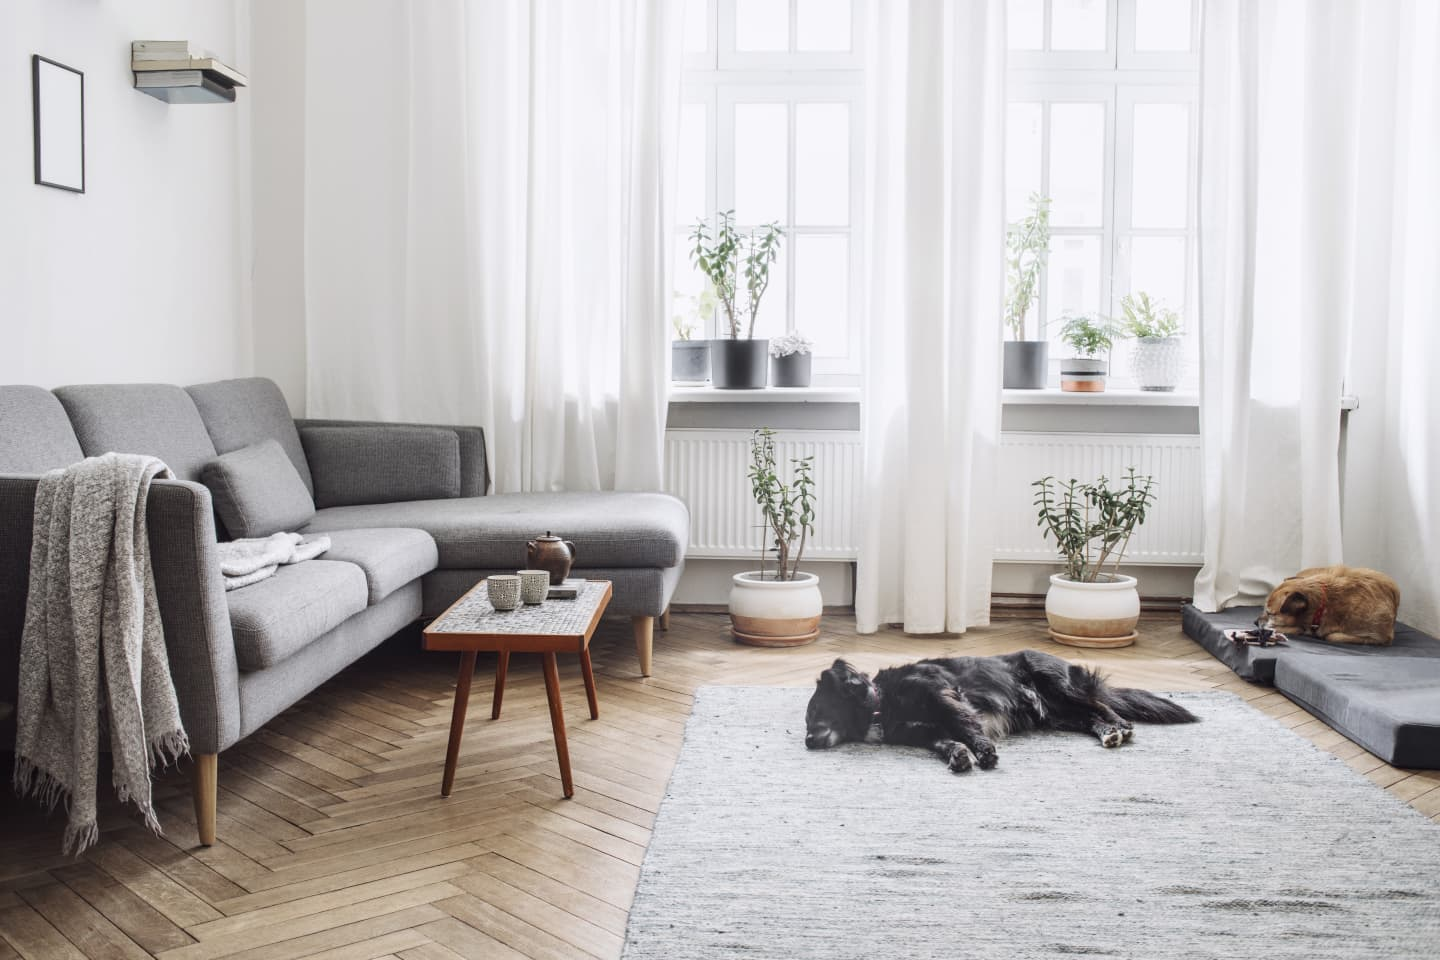 Neutral schemed living room with plant features and two dogs